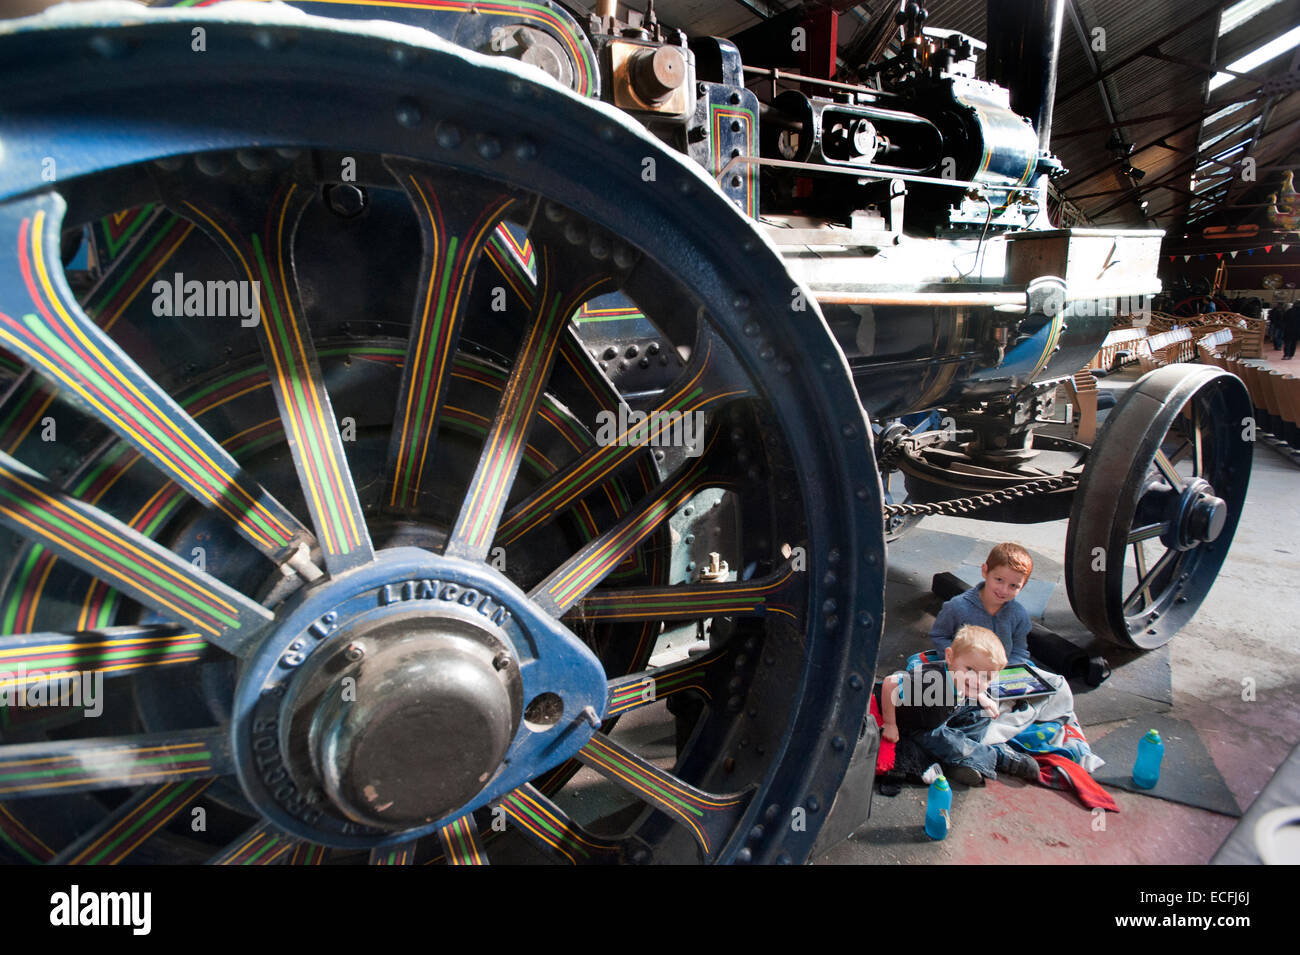 Two young brothers sit under the giant decorative wheels of Traction Engine 'The Champion' built by Ruston - Stock Image